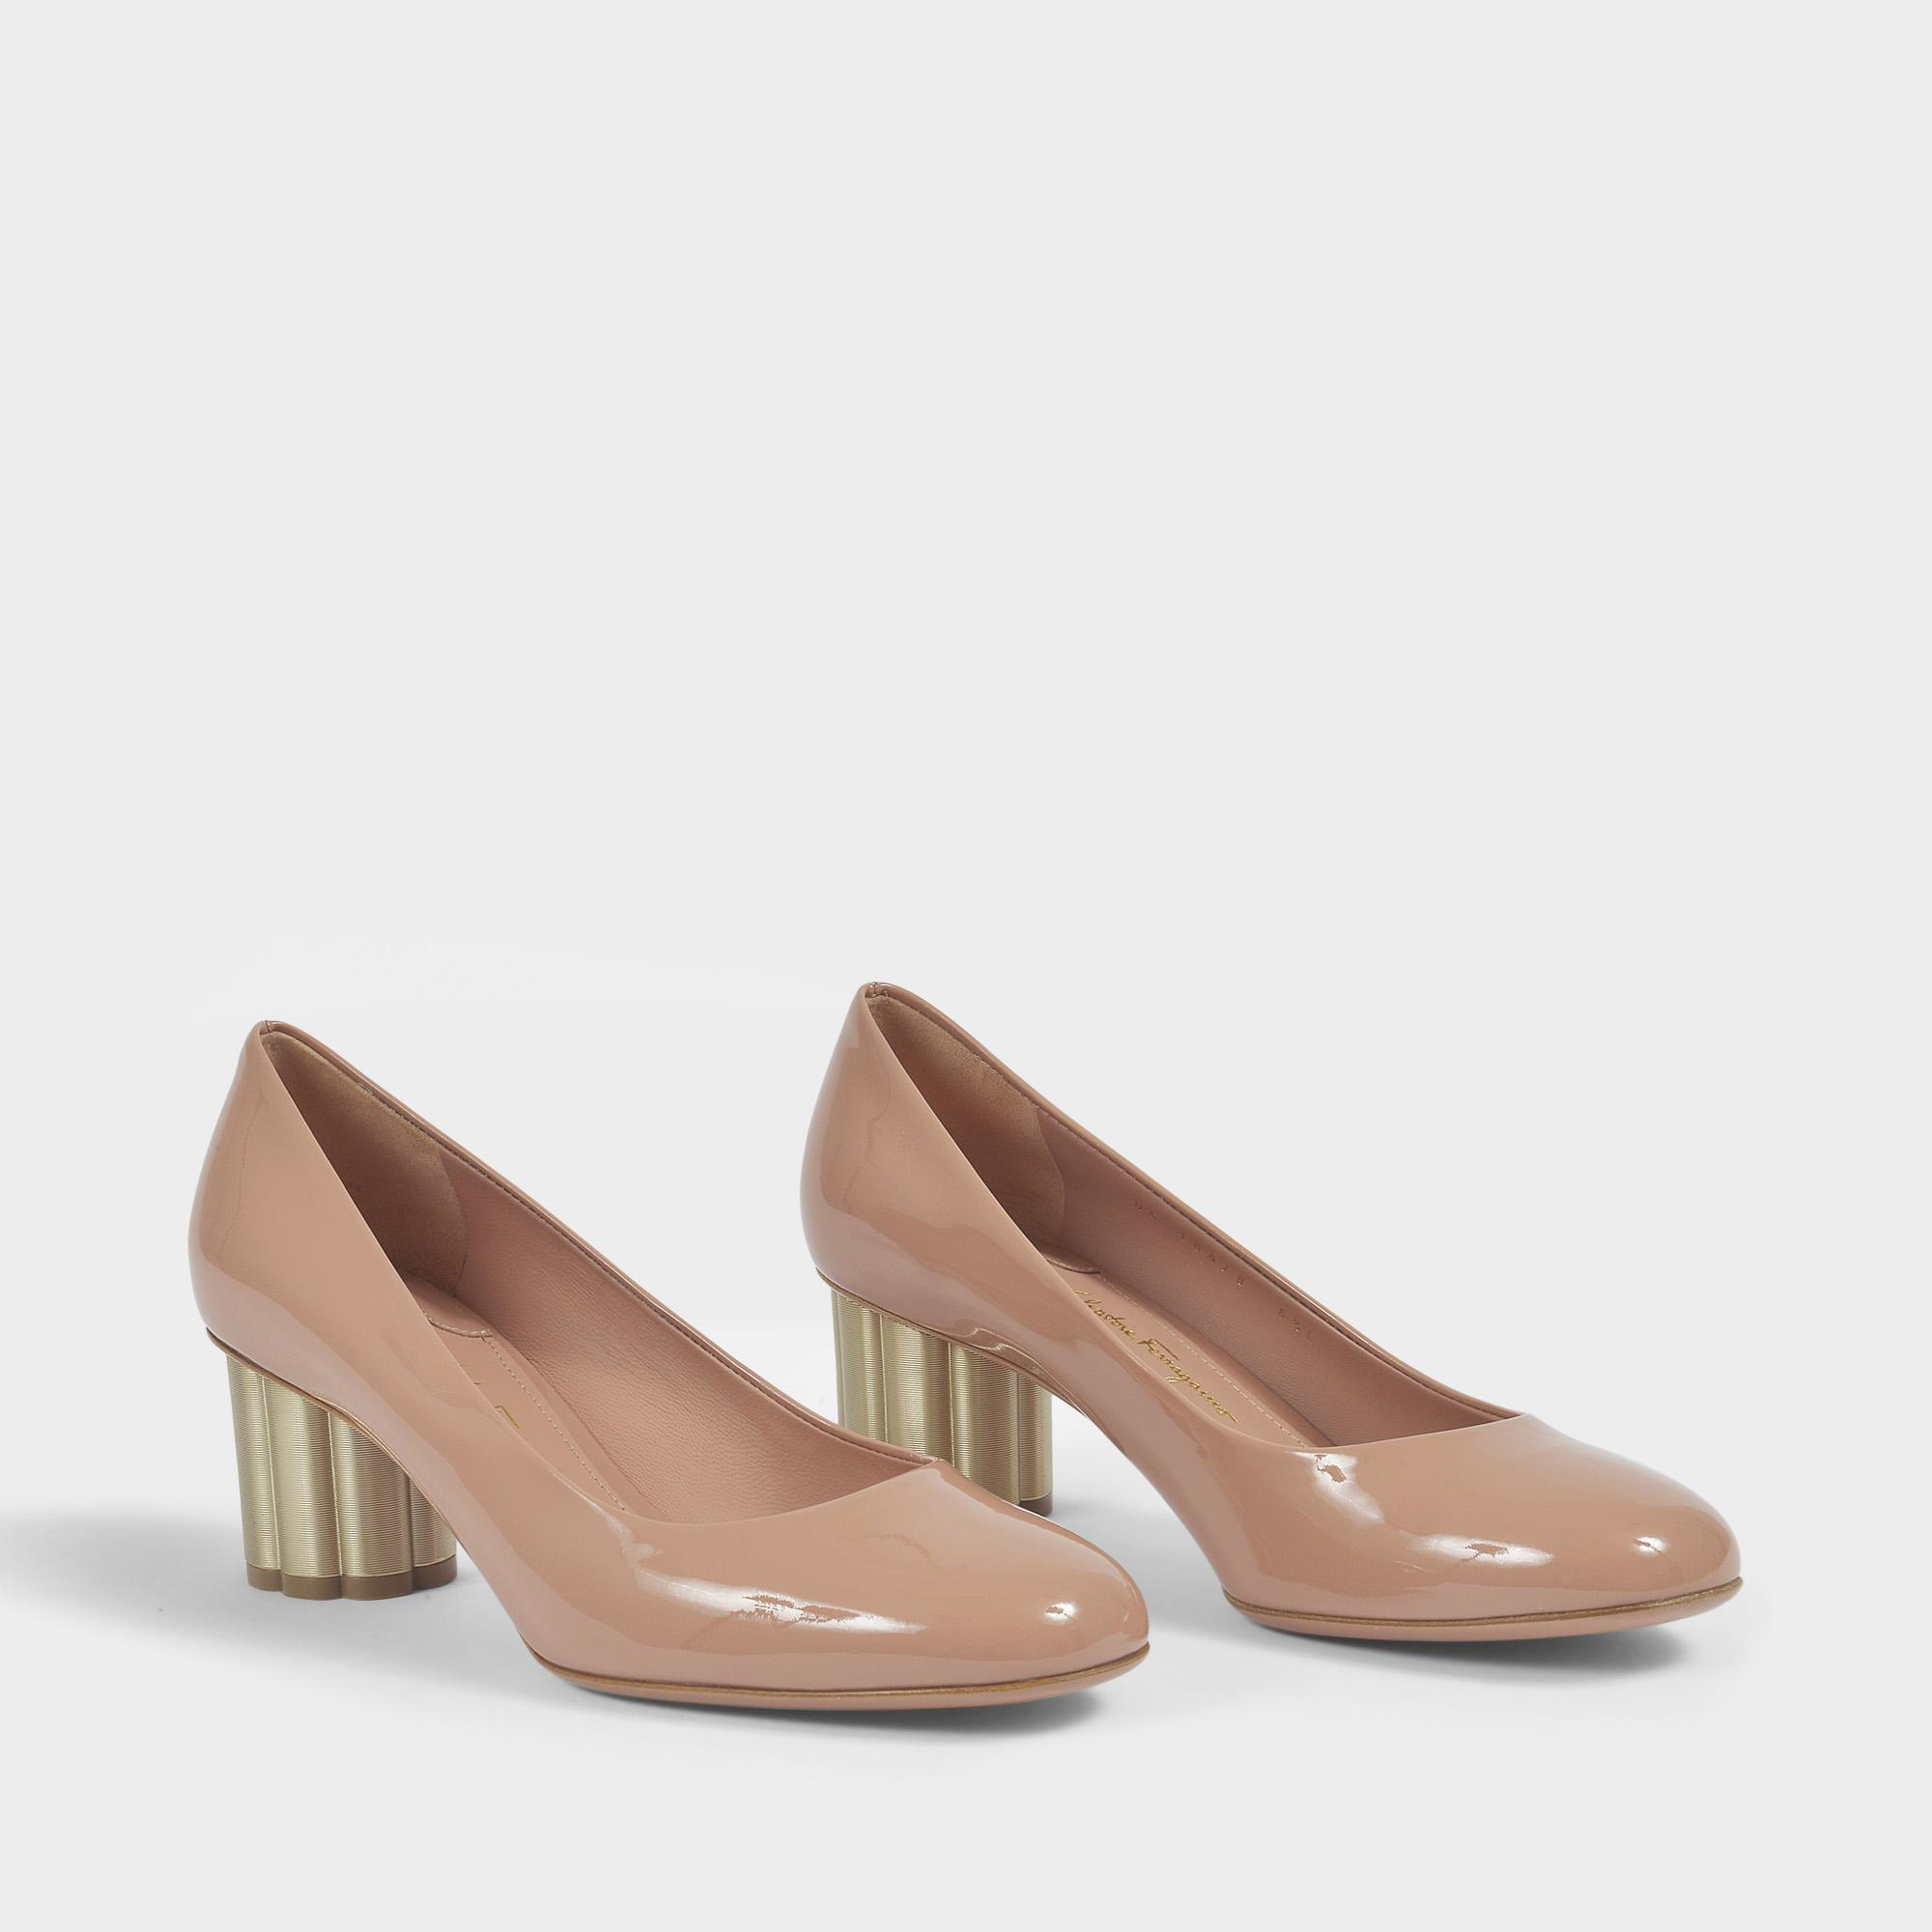 Clearance 100% Authentic Professional Sale Online Lucca 55 Patent Pumps in Dark Pink Patent Leather Salvatore Ferragamo Buy Cheap Geniue Stockist Buy Cheap Latest Collections Cheap Original FldNg